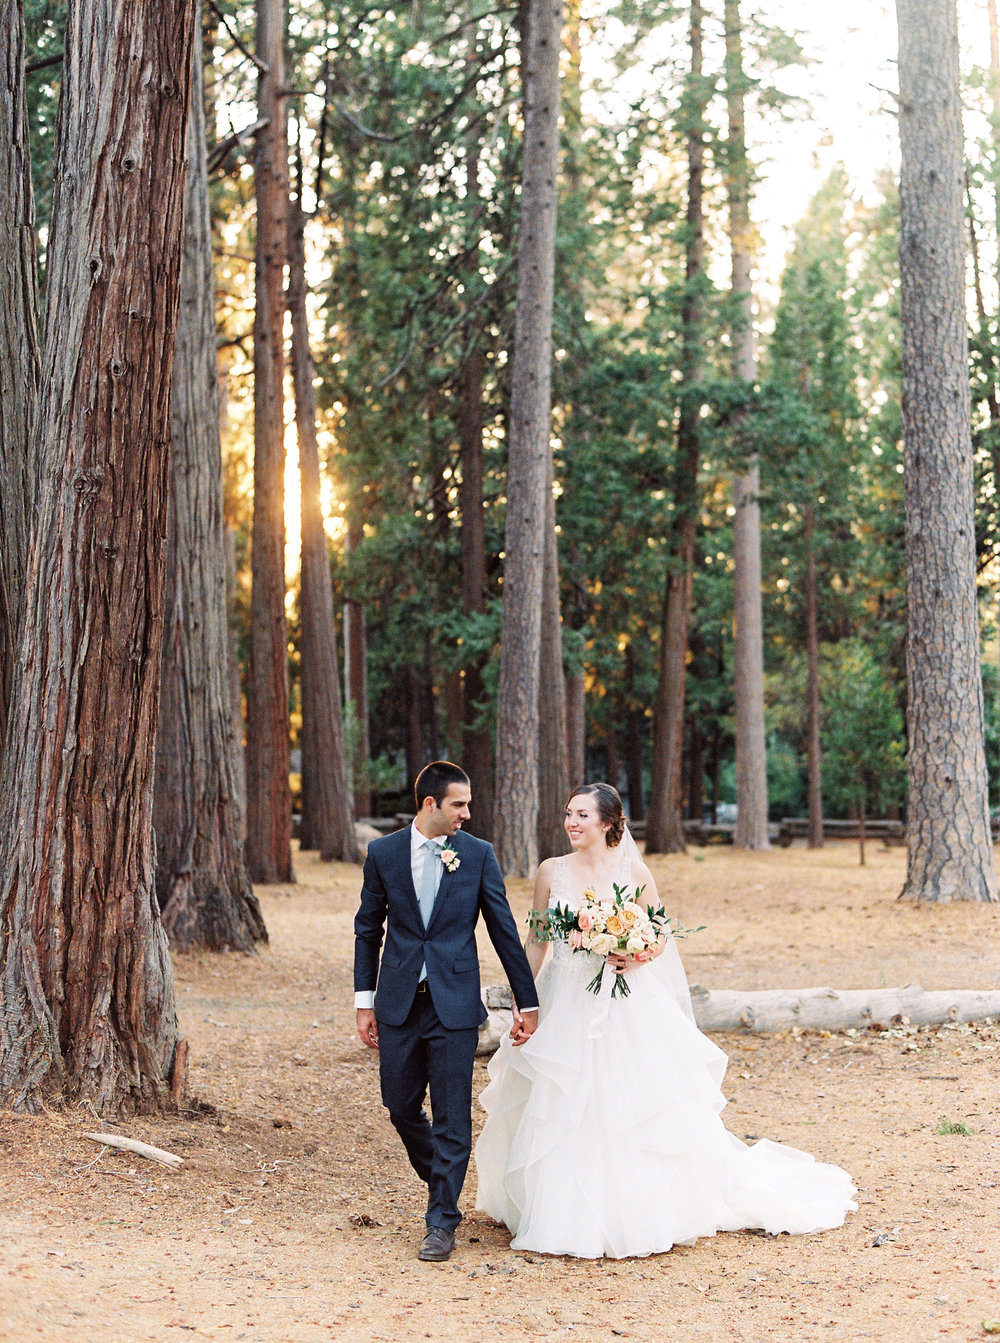 Forest-house-lodge-wedding-foresthill-california-70.jpg